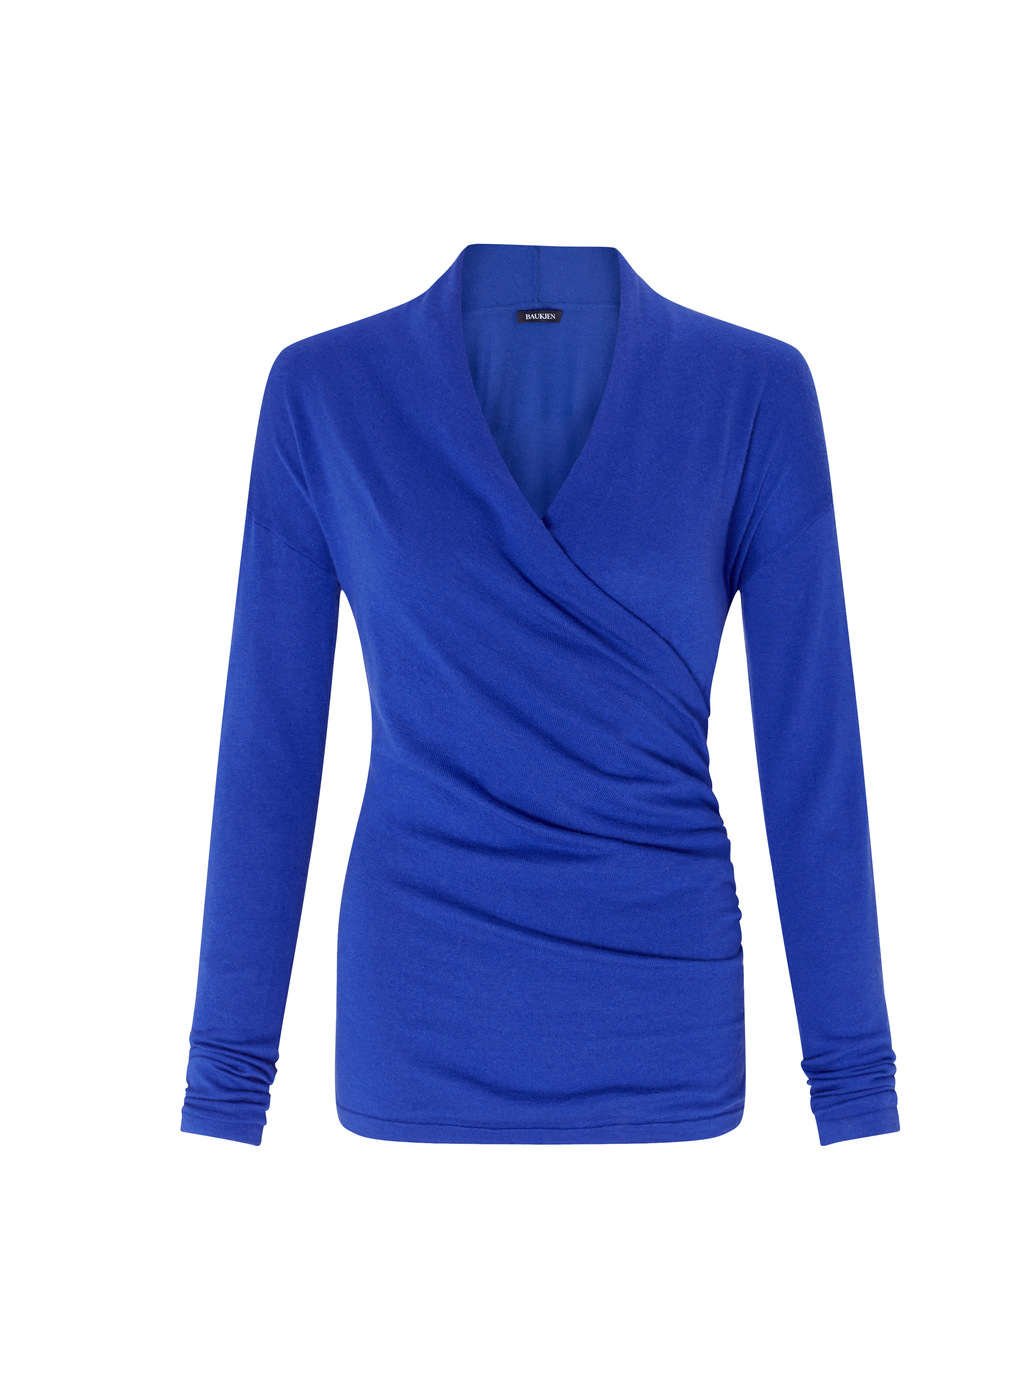 Womenswear Callington Wrap Jumper - neckline: v-neck; pattern: plain; style: faux wrap/wrap; predominant colour: royal blue; occasions: work; length: standard; fibres: wool - 100%; fit: slim fit; sleeve length: long sleeve; sleeve style: standard; texture group: knits/crochet; pattern type: knitted - other; season: a/w 2016; wardrobe: highlight